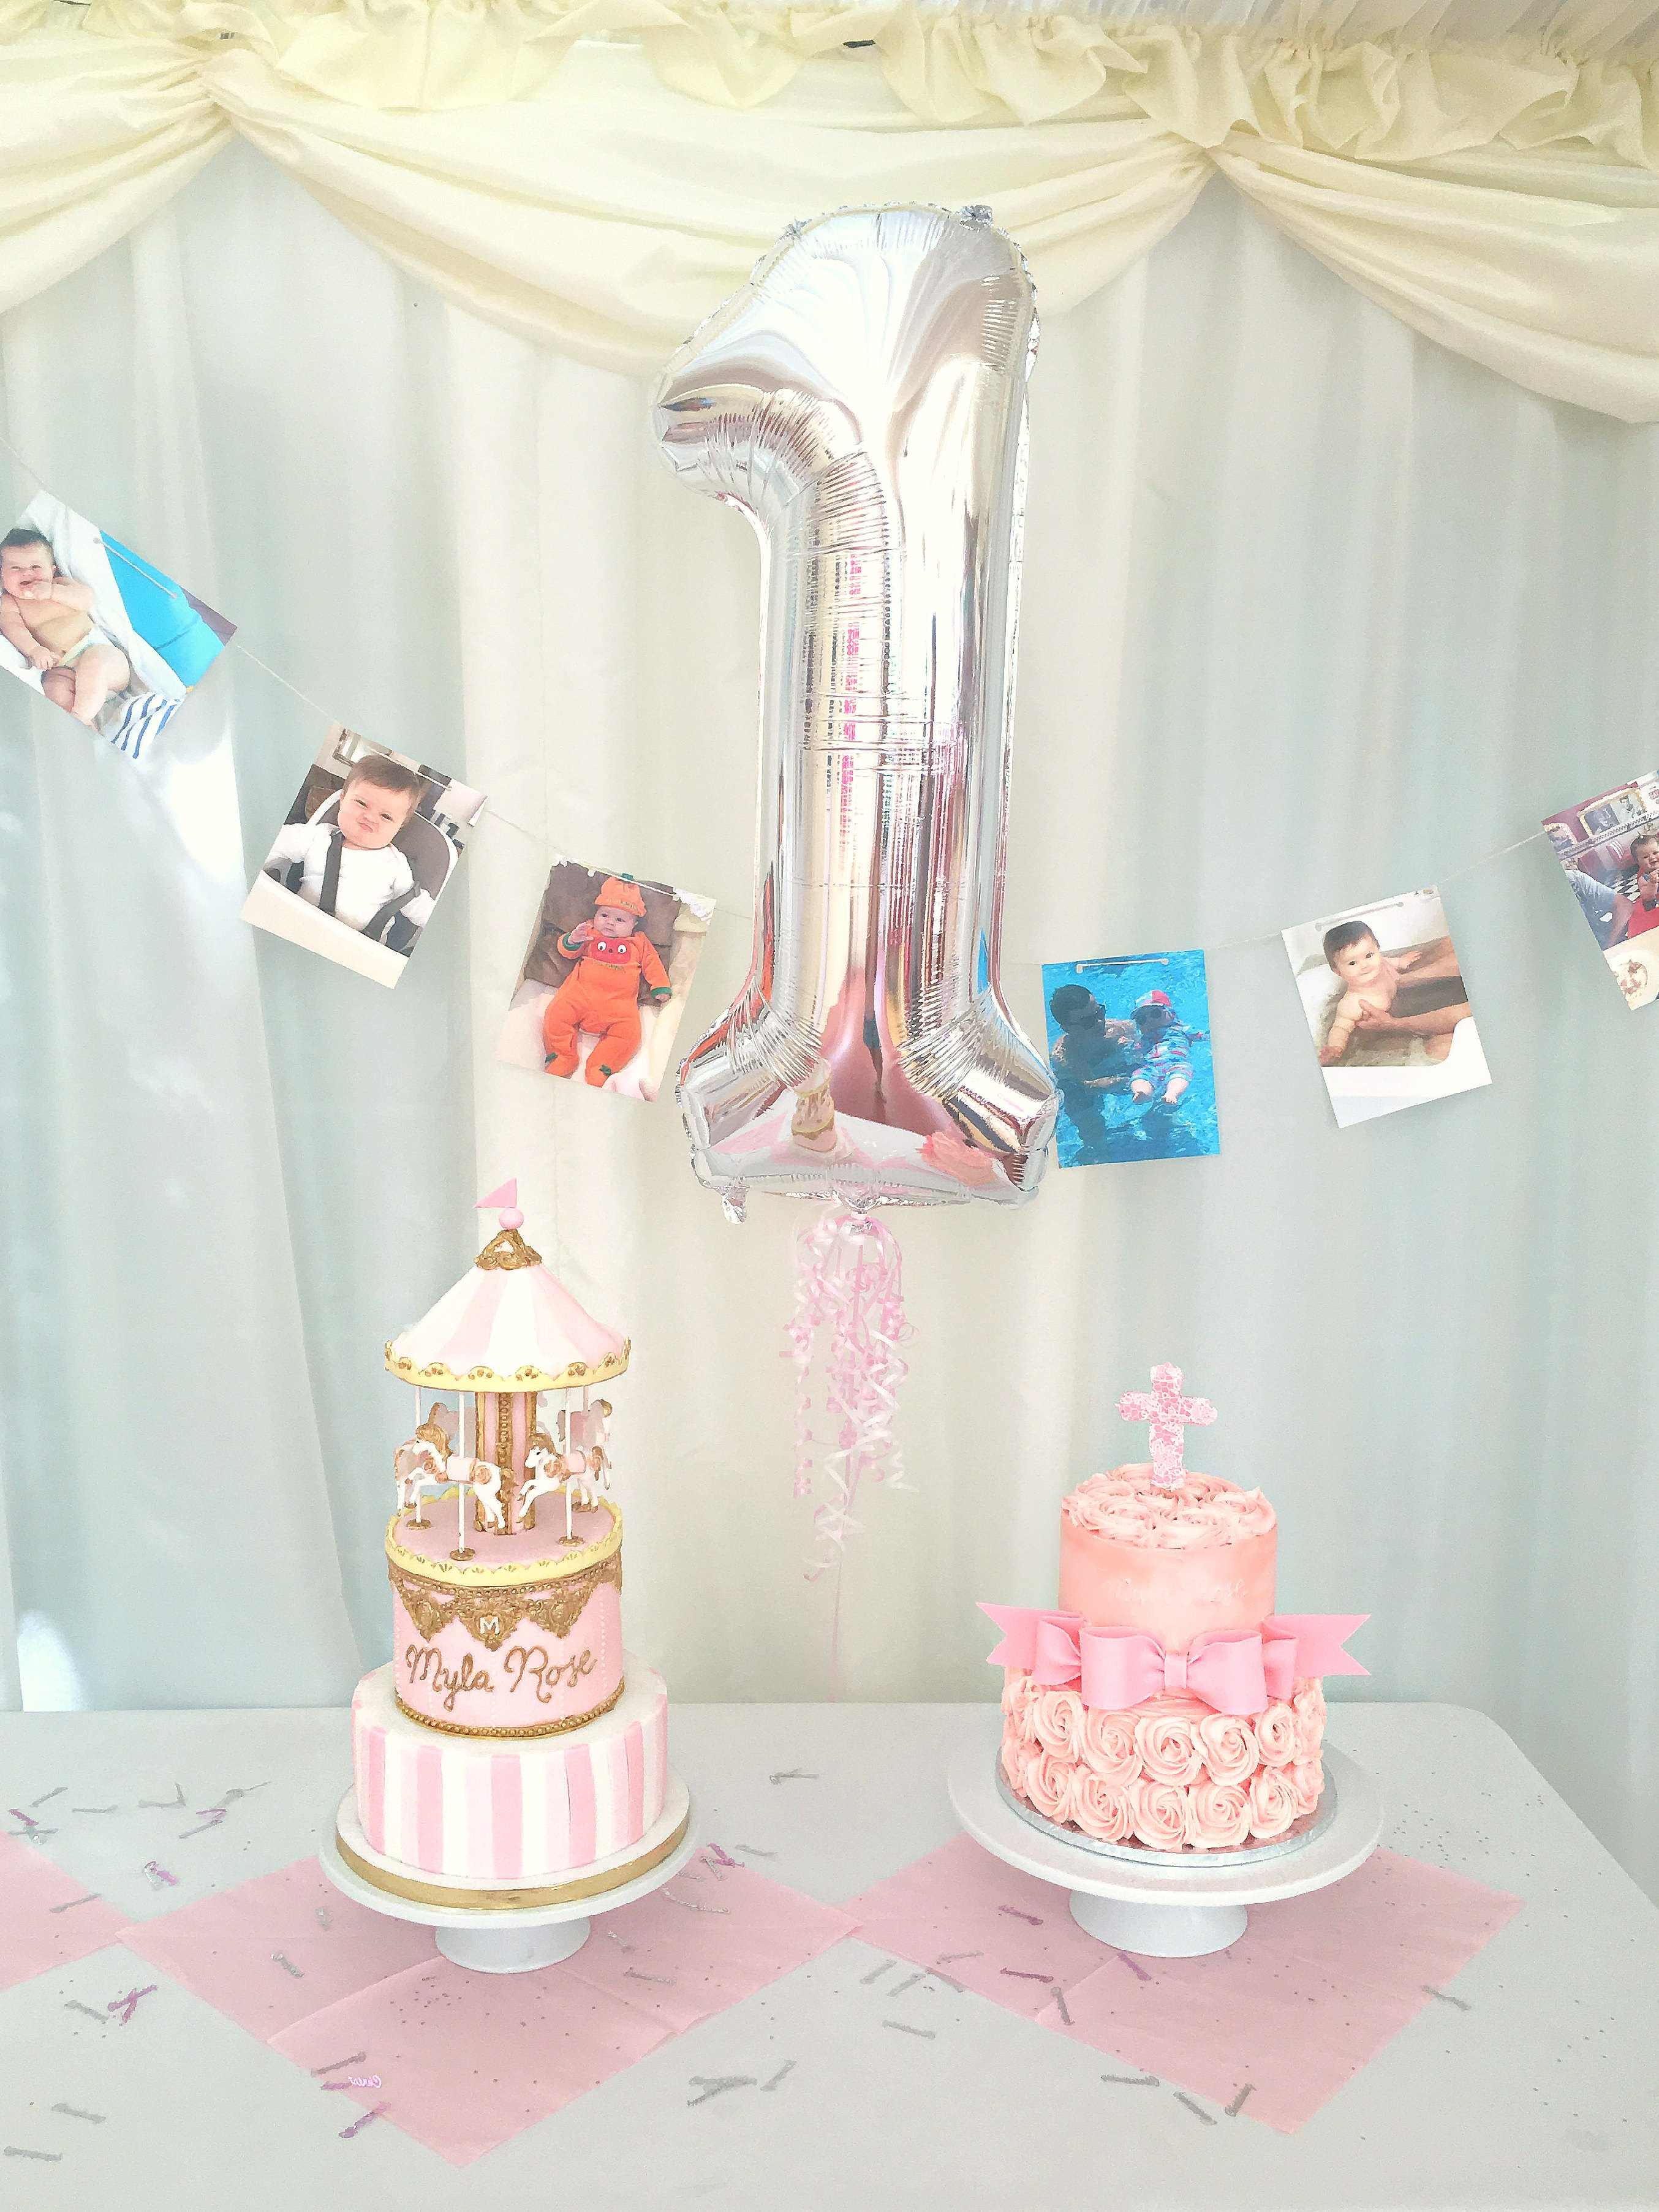 Pink Birthday and Christening Cakes First Year Old Girl's Party Cherie Kelly London